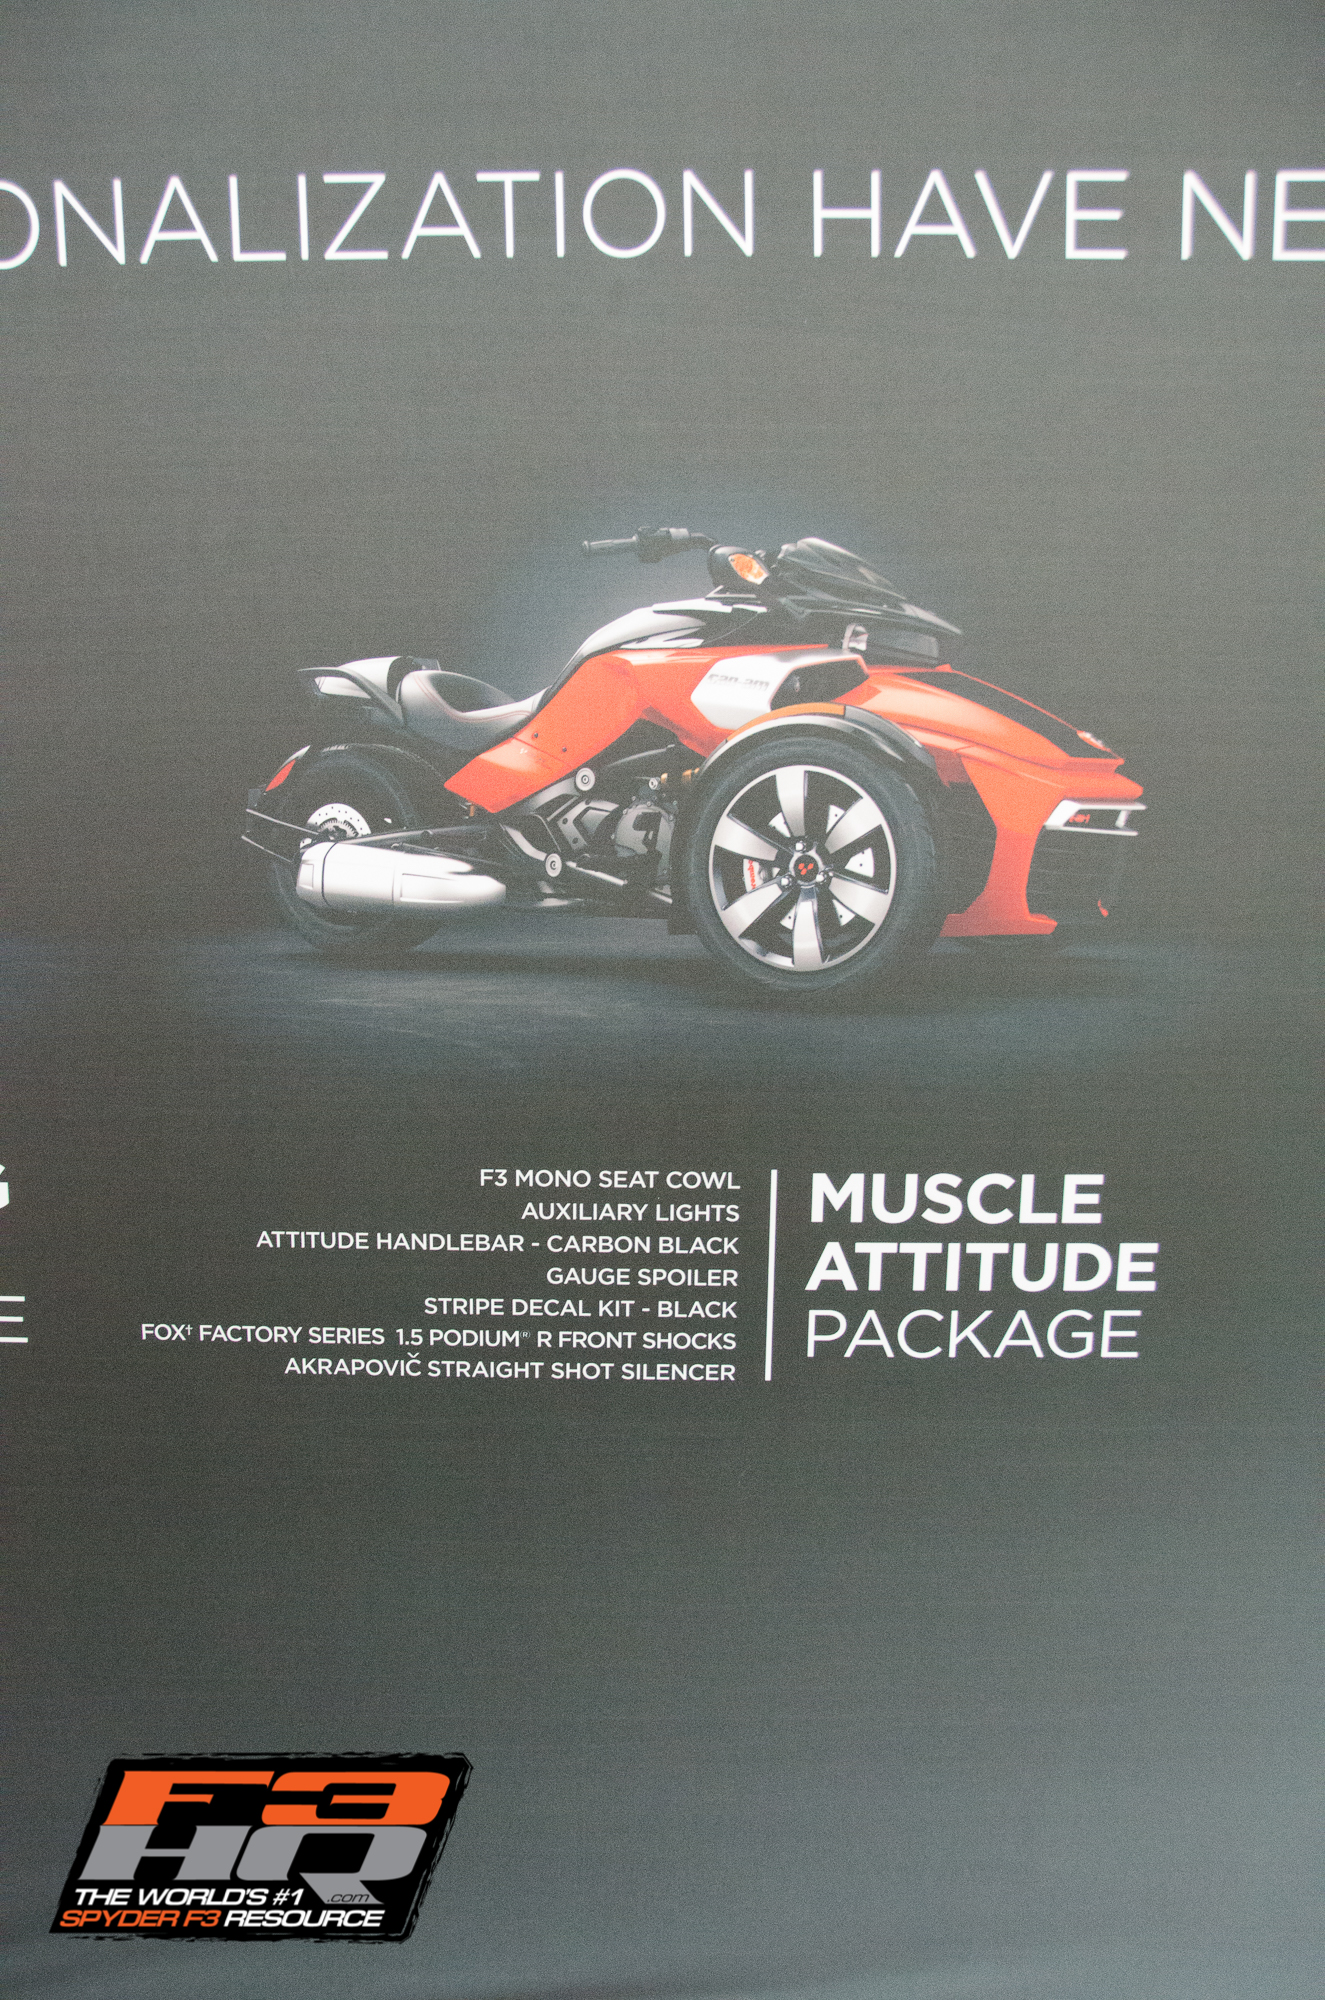 2014 Can-Am Spyder F3 - Product Launch and Ryde-77-43.jpg